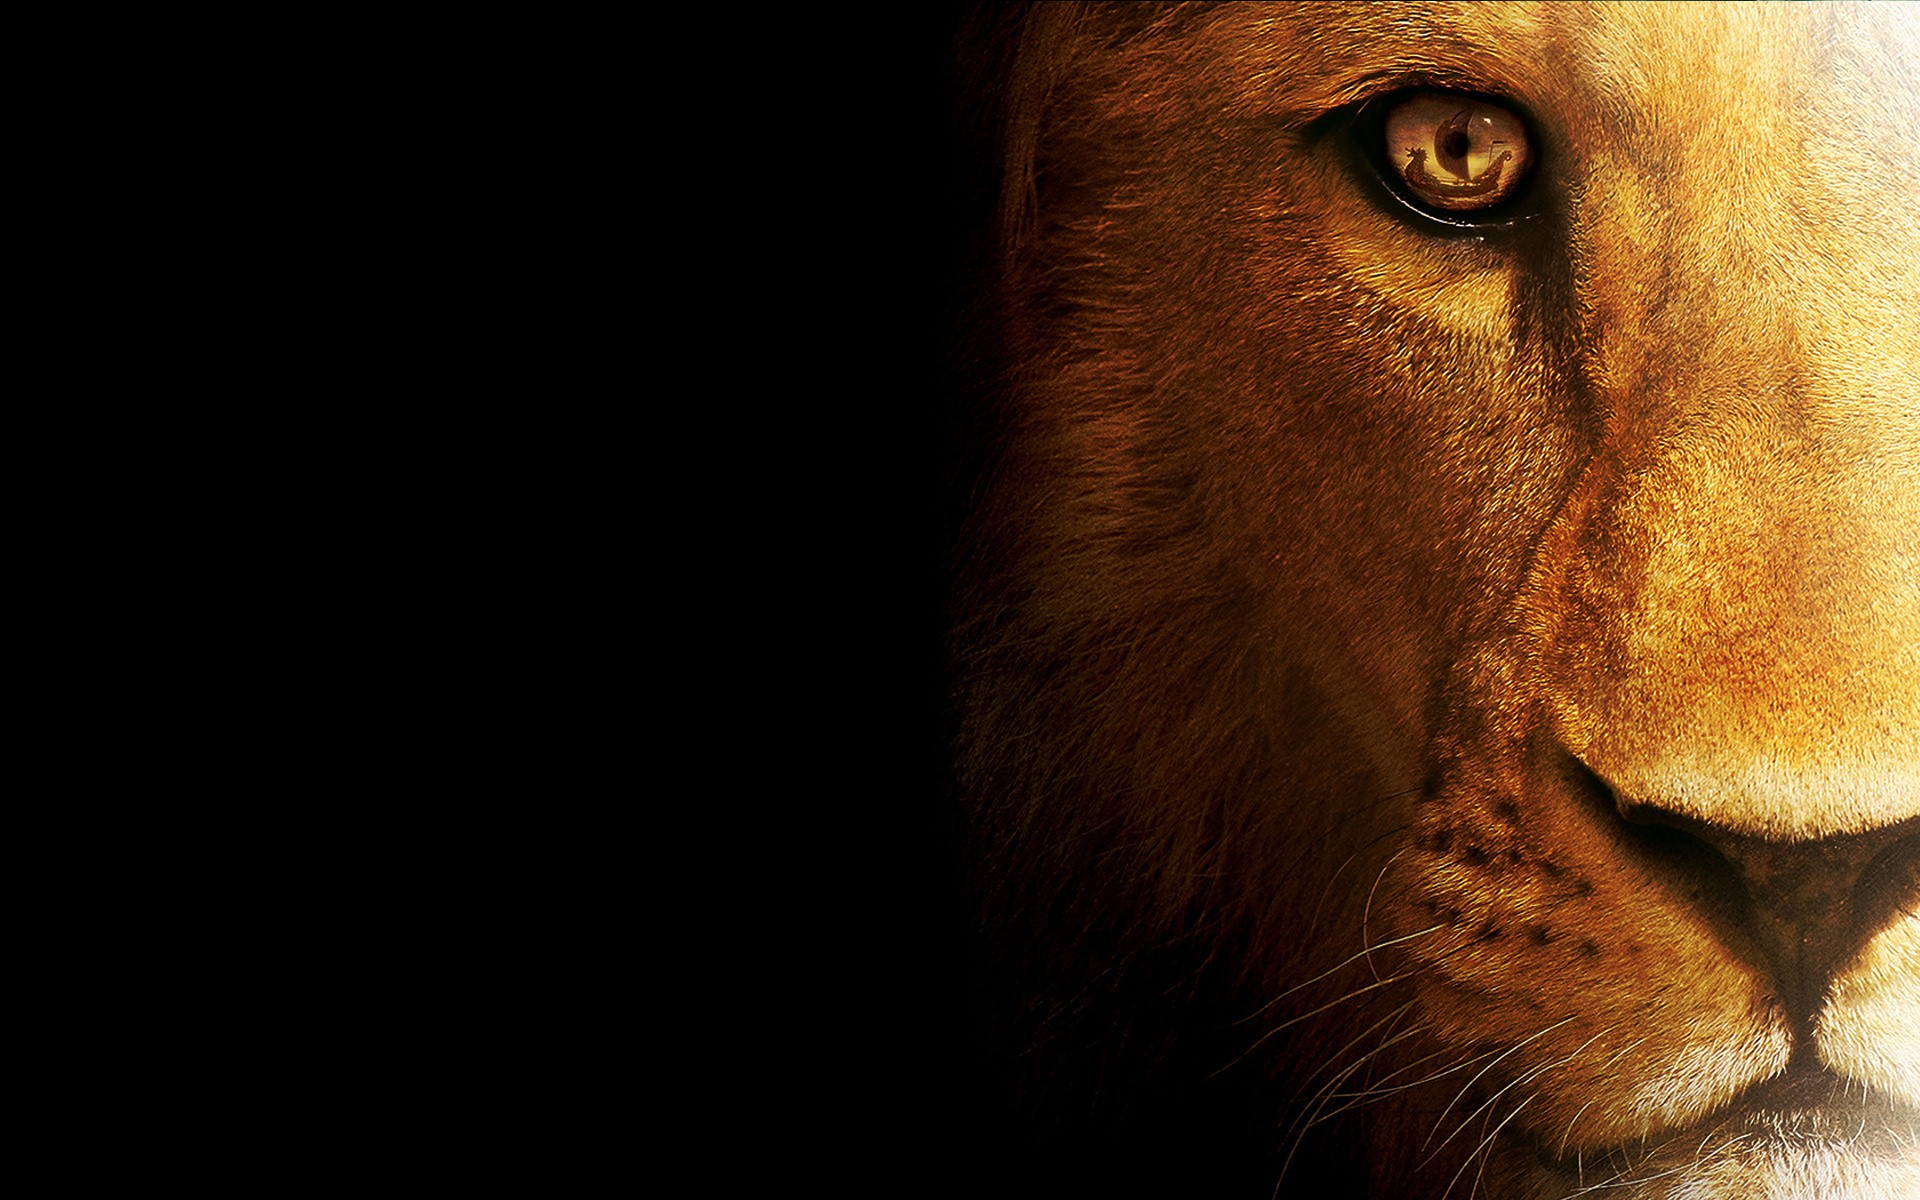 Lion HD Wallpapers  Backgrounds  Wallpaper  1920x1200